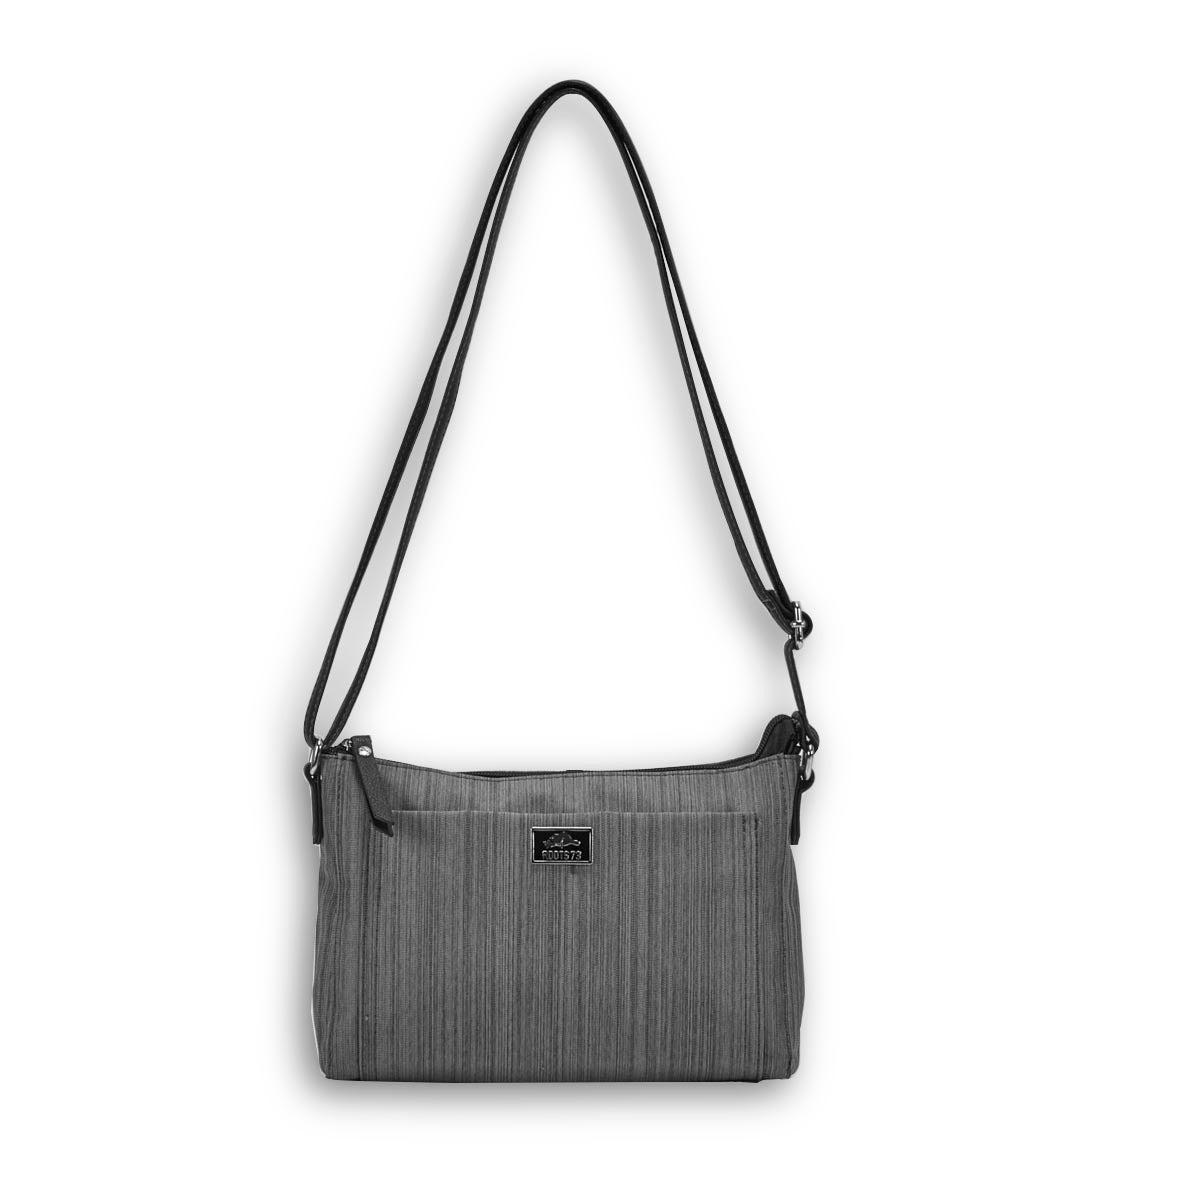 Lds Roots73 grey front pocket crossbody